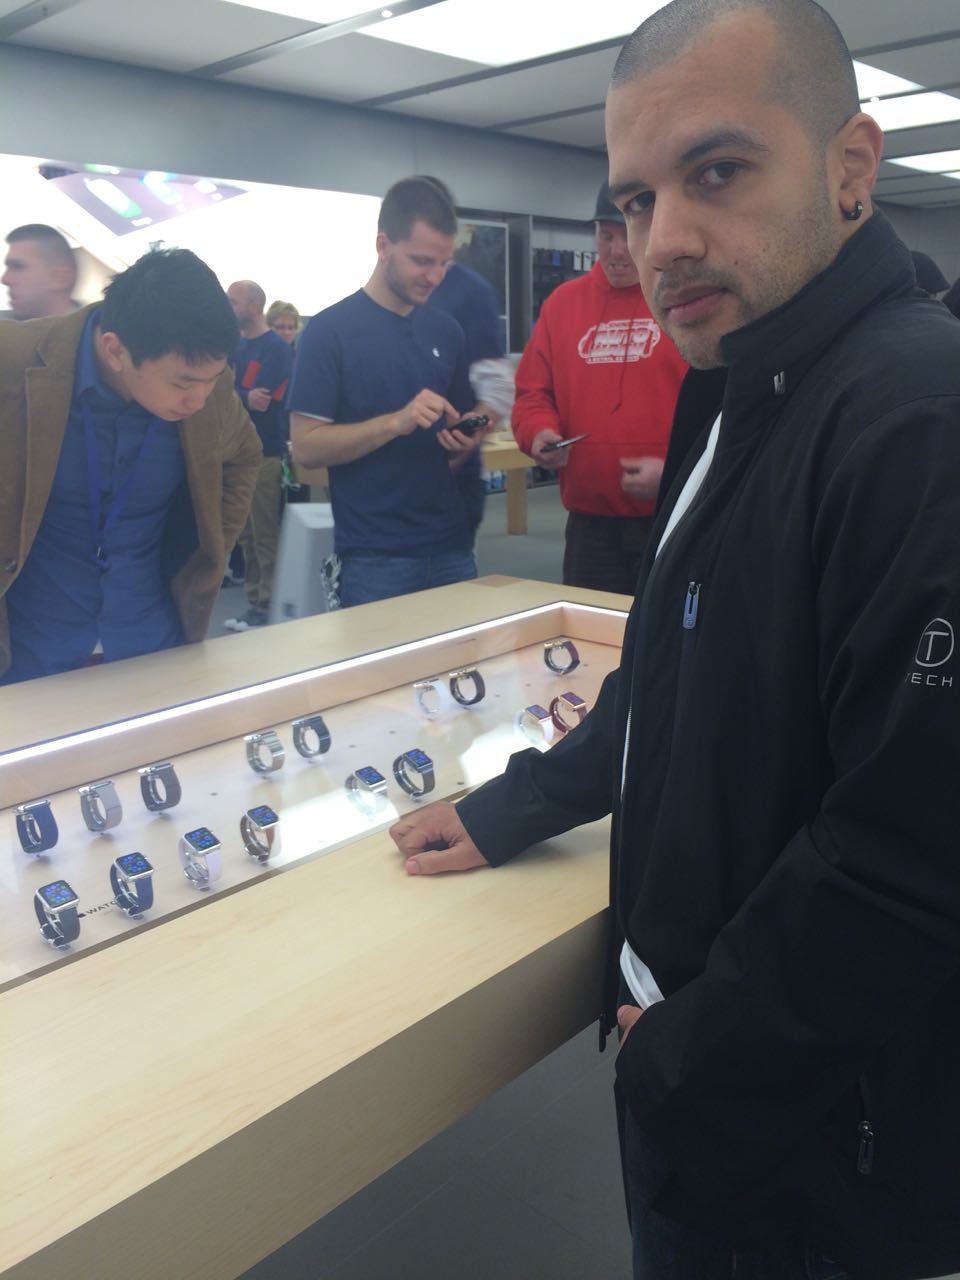 apple_watch_apple Store1.jpg